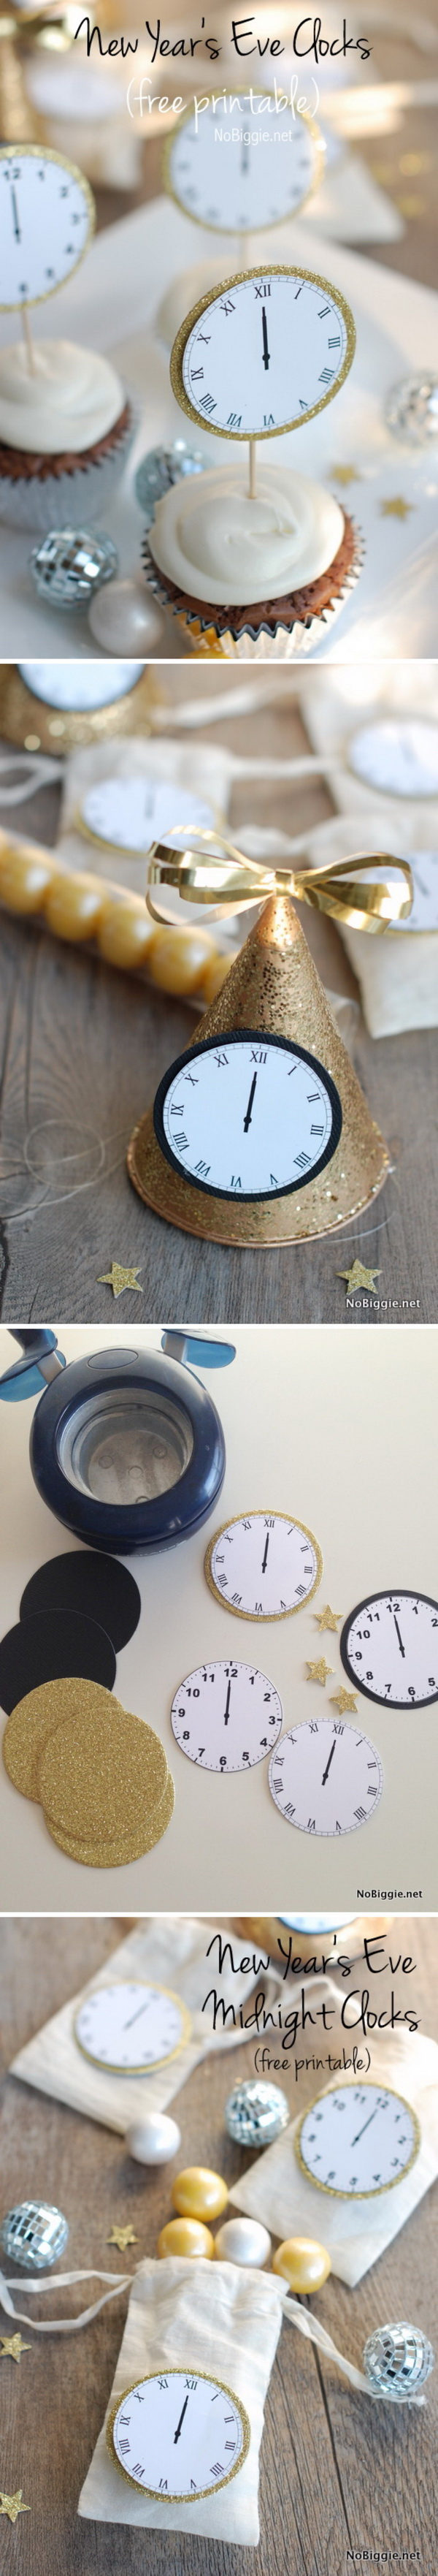 32 New Year's Eve Midnight Clock Free Printable